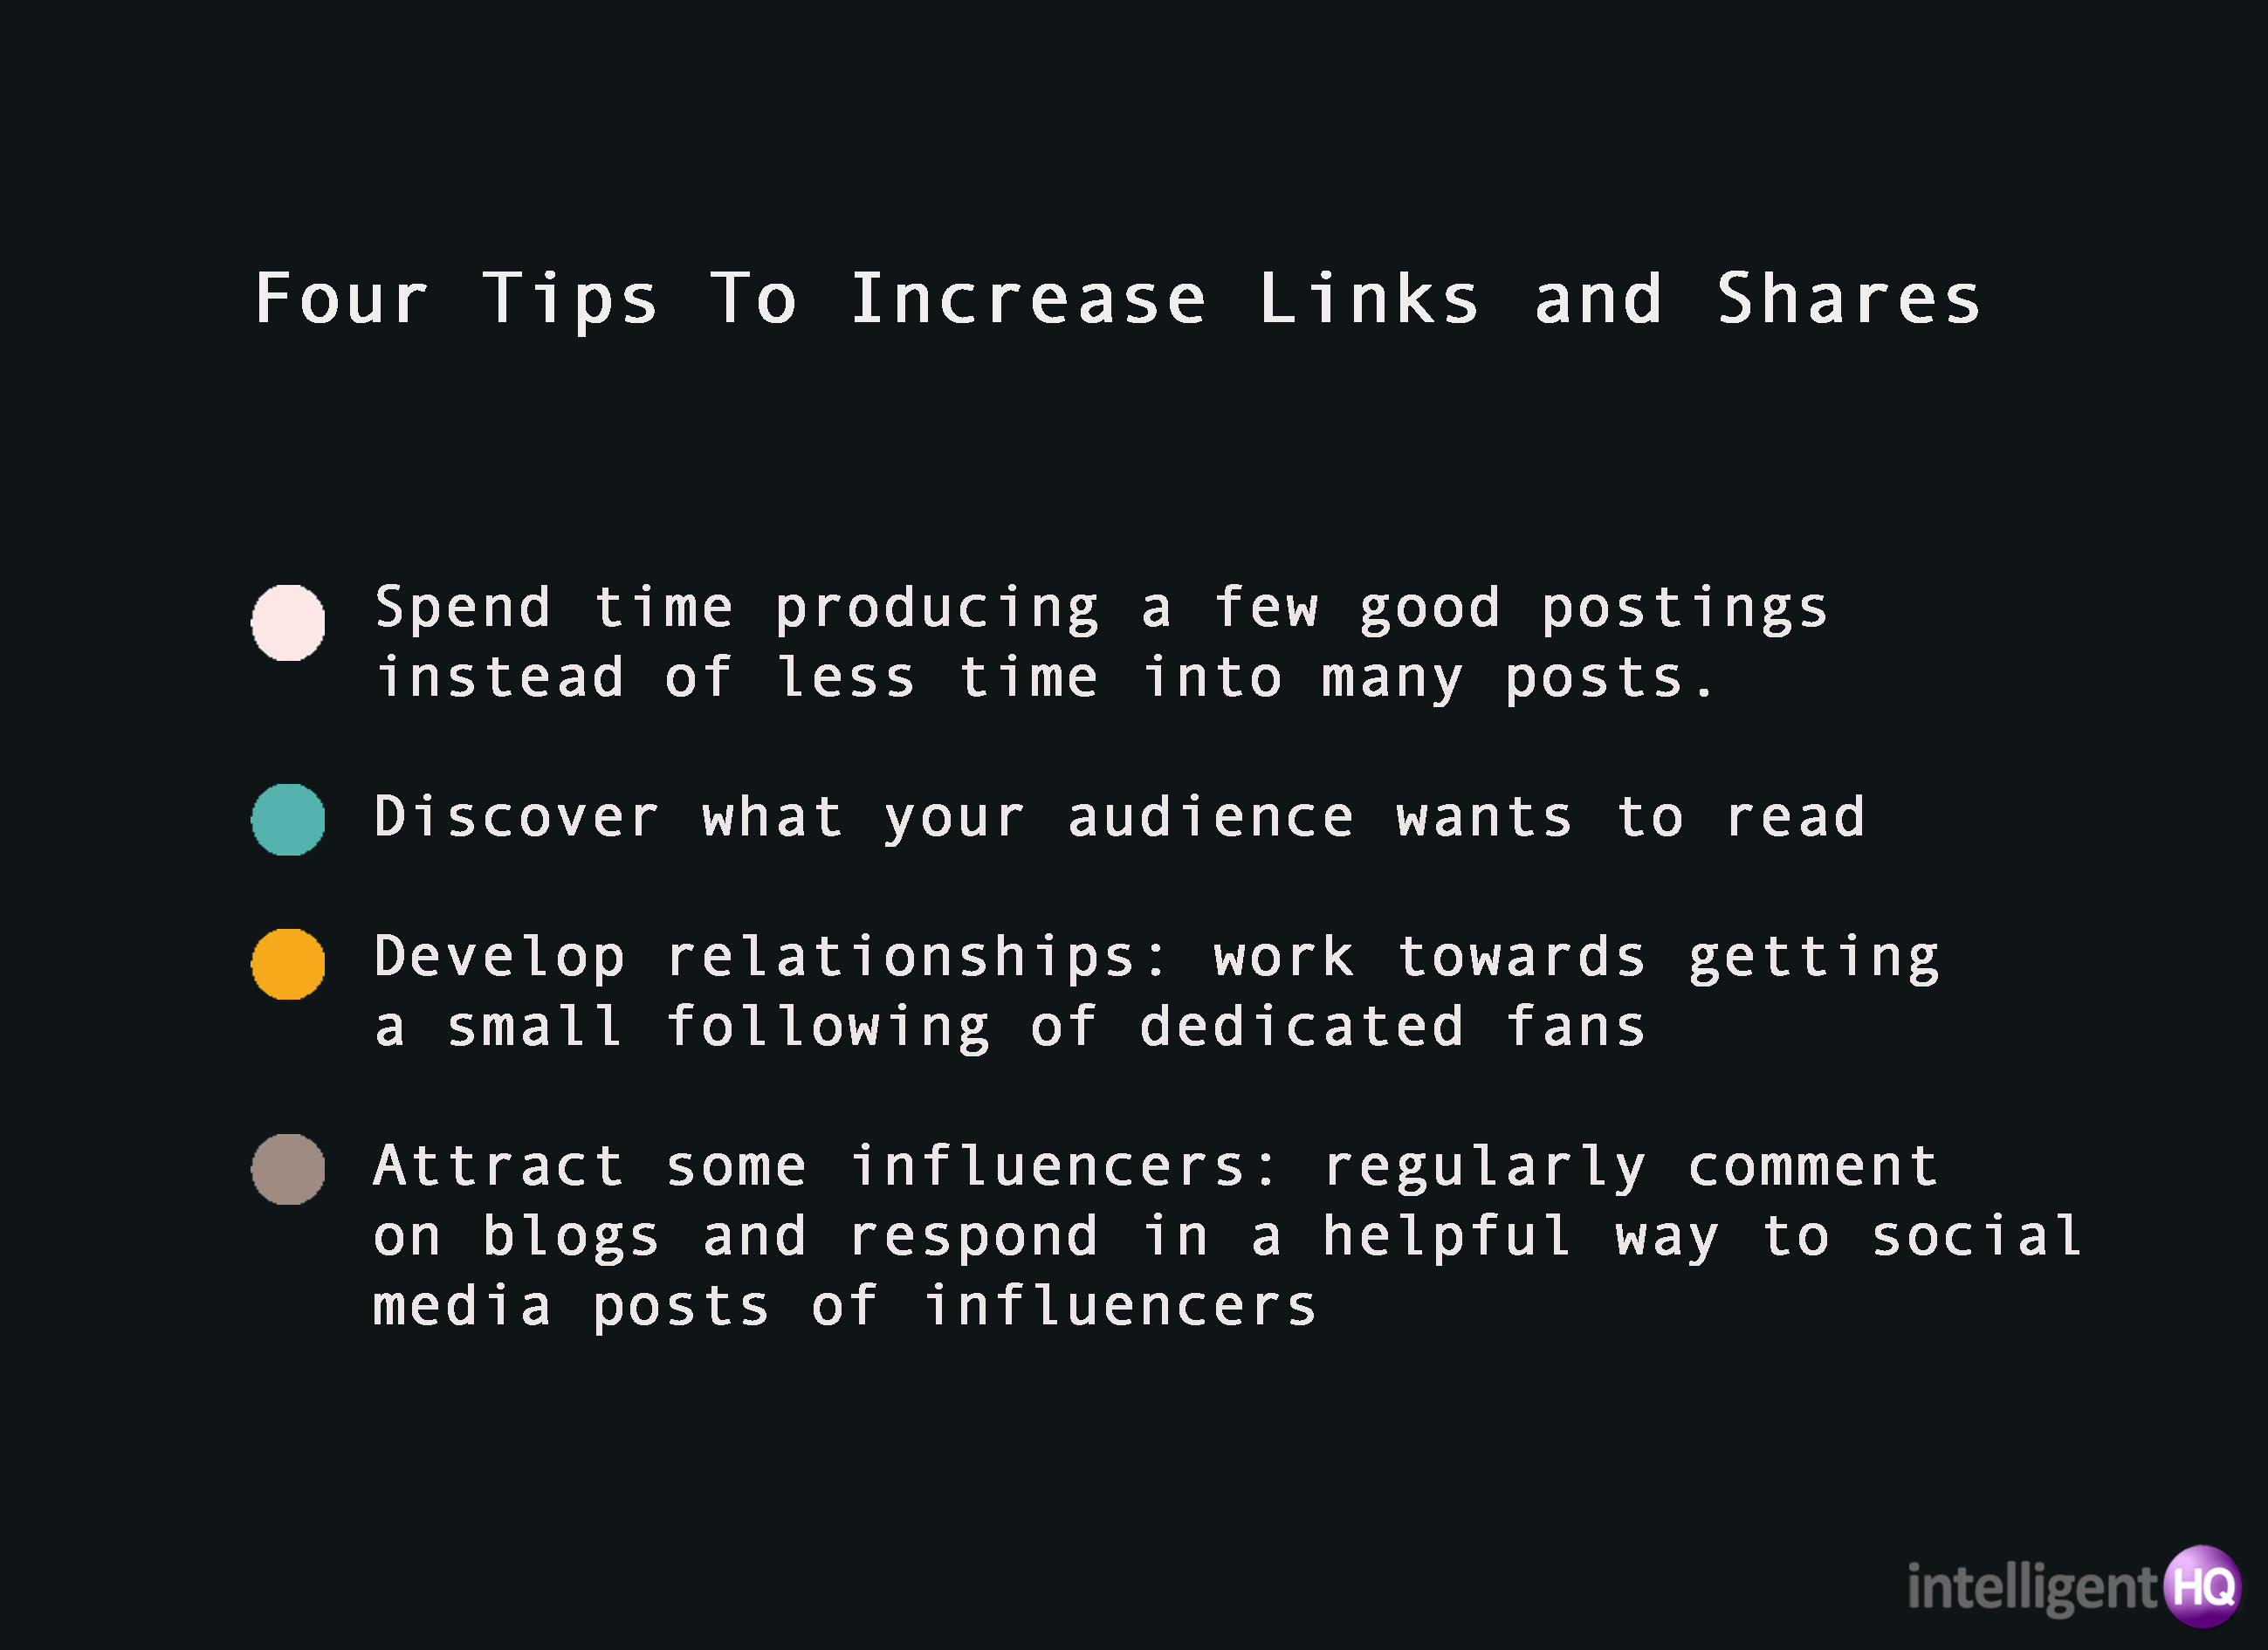 Four tips to increase links and shares Intelligenthq